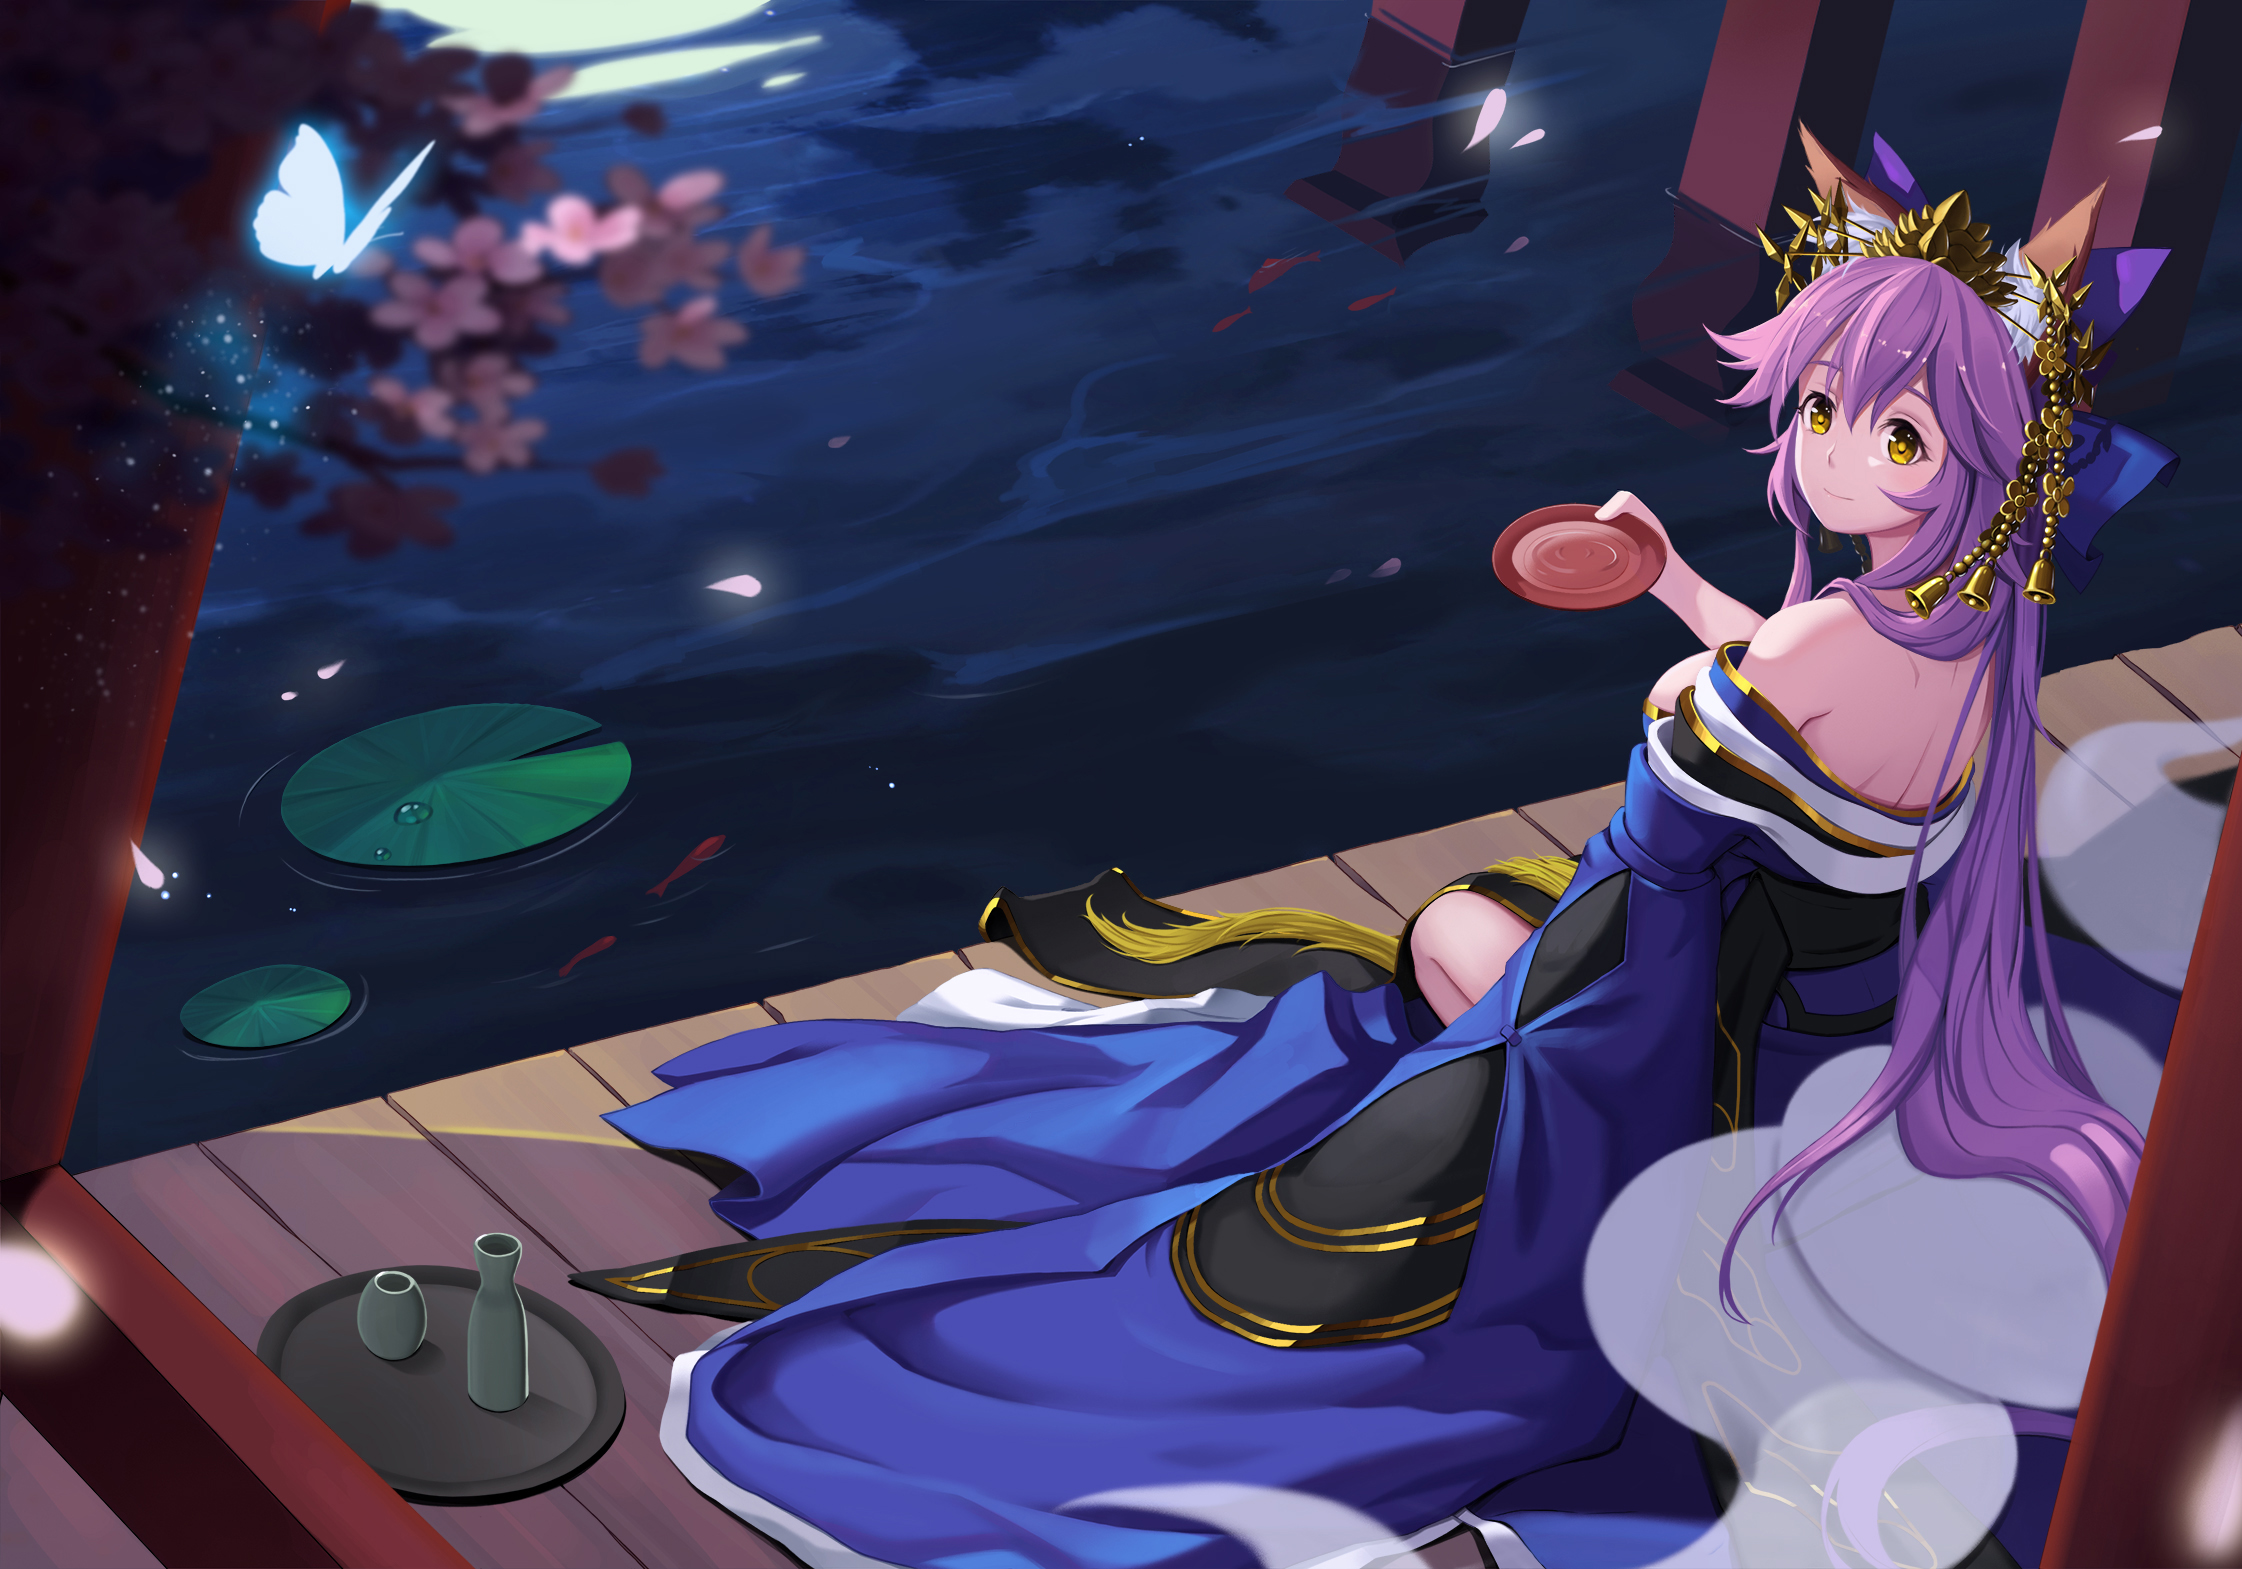 Fate Extra Hd Wallpaper Background Image 2242x1569 Id 792294